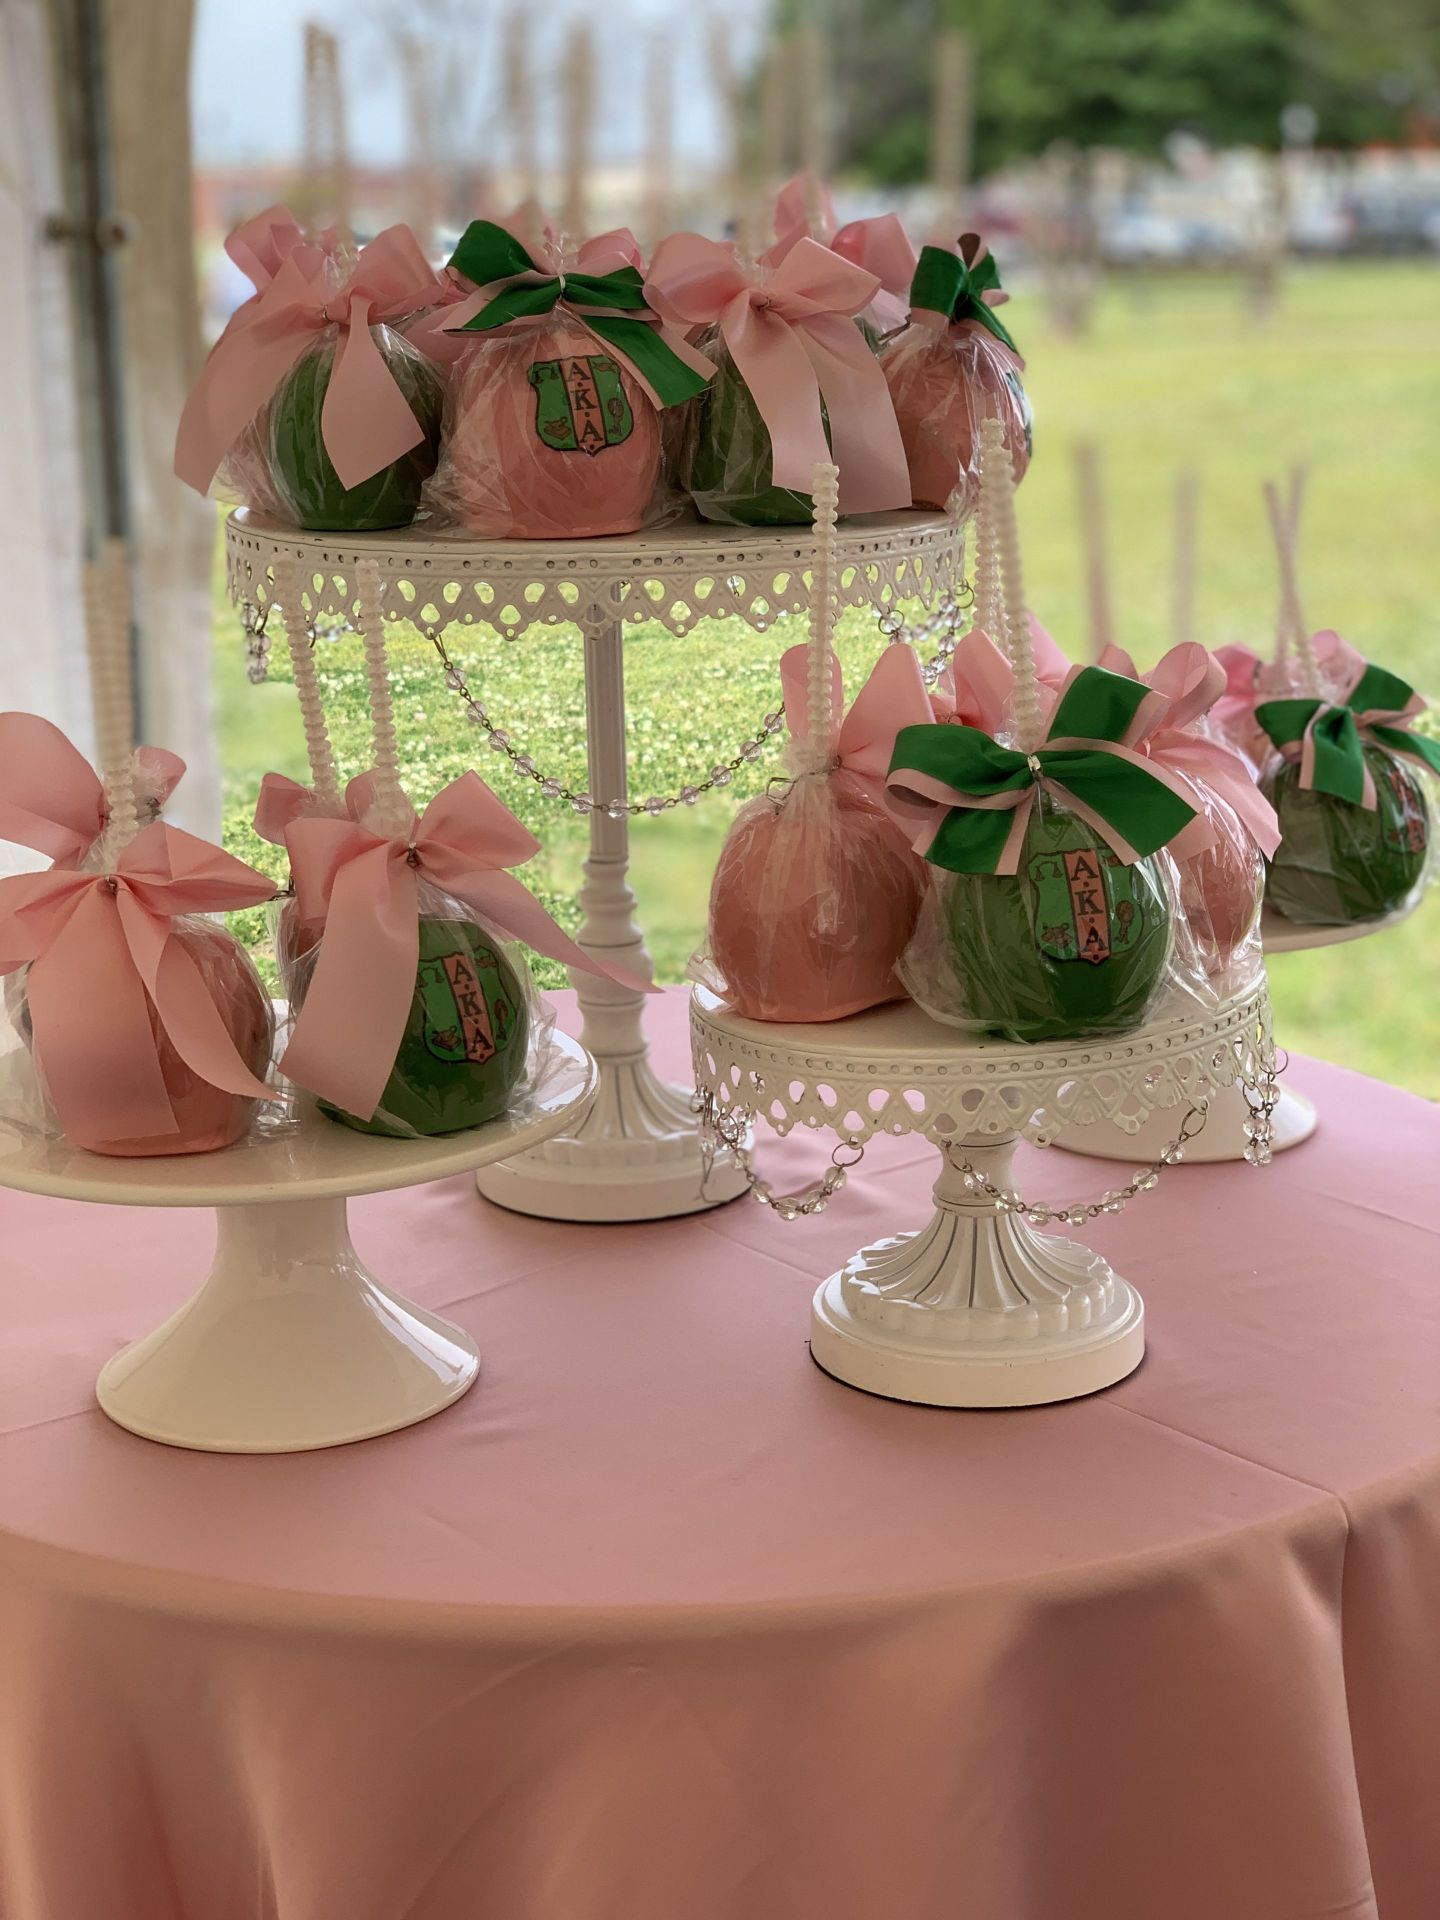 IMG_3027-1440x1920 Alpha Kappa Alpha Soiree - Pink & Green Outdoor Party Inspiration in Alabama